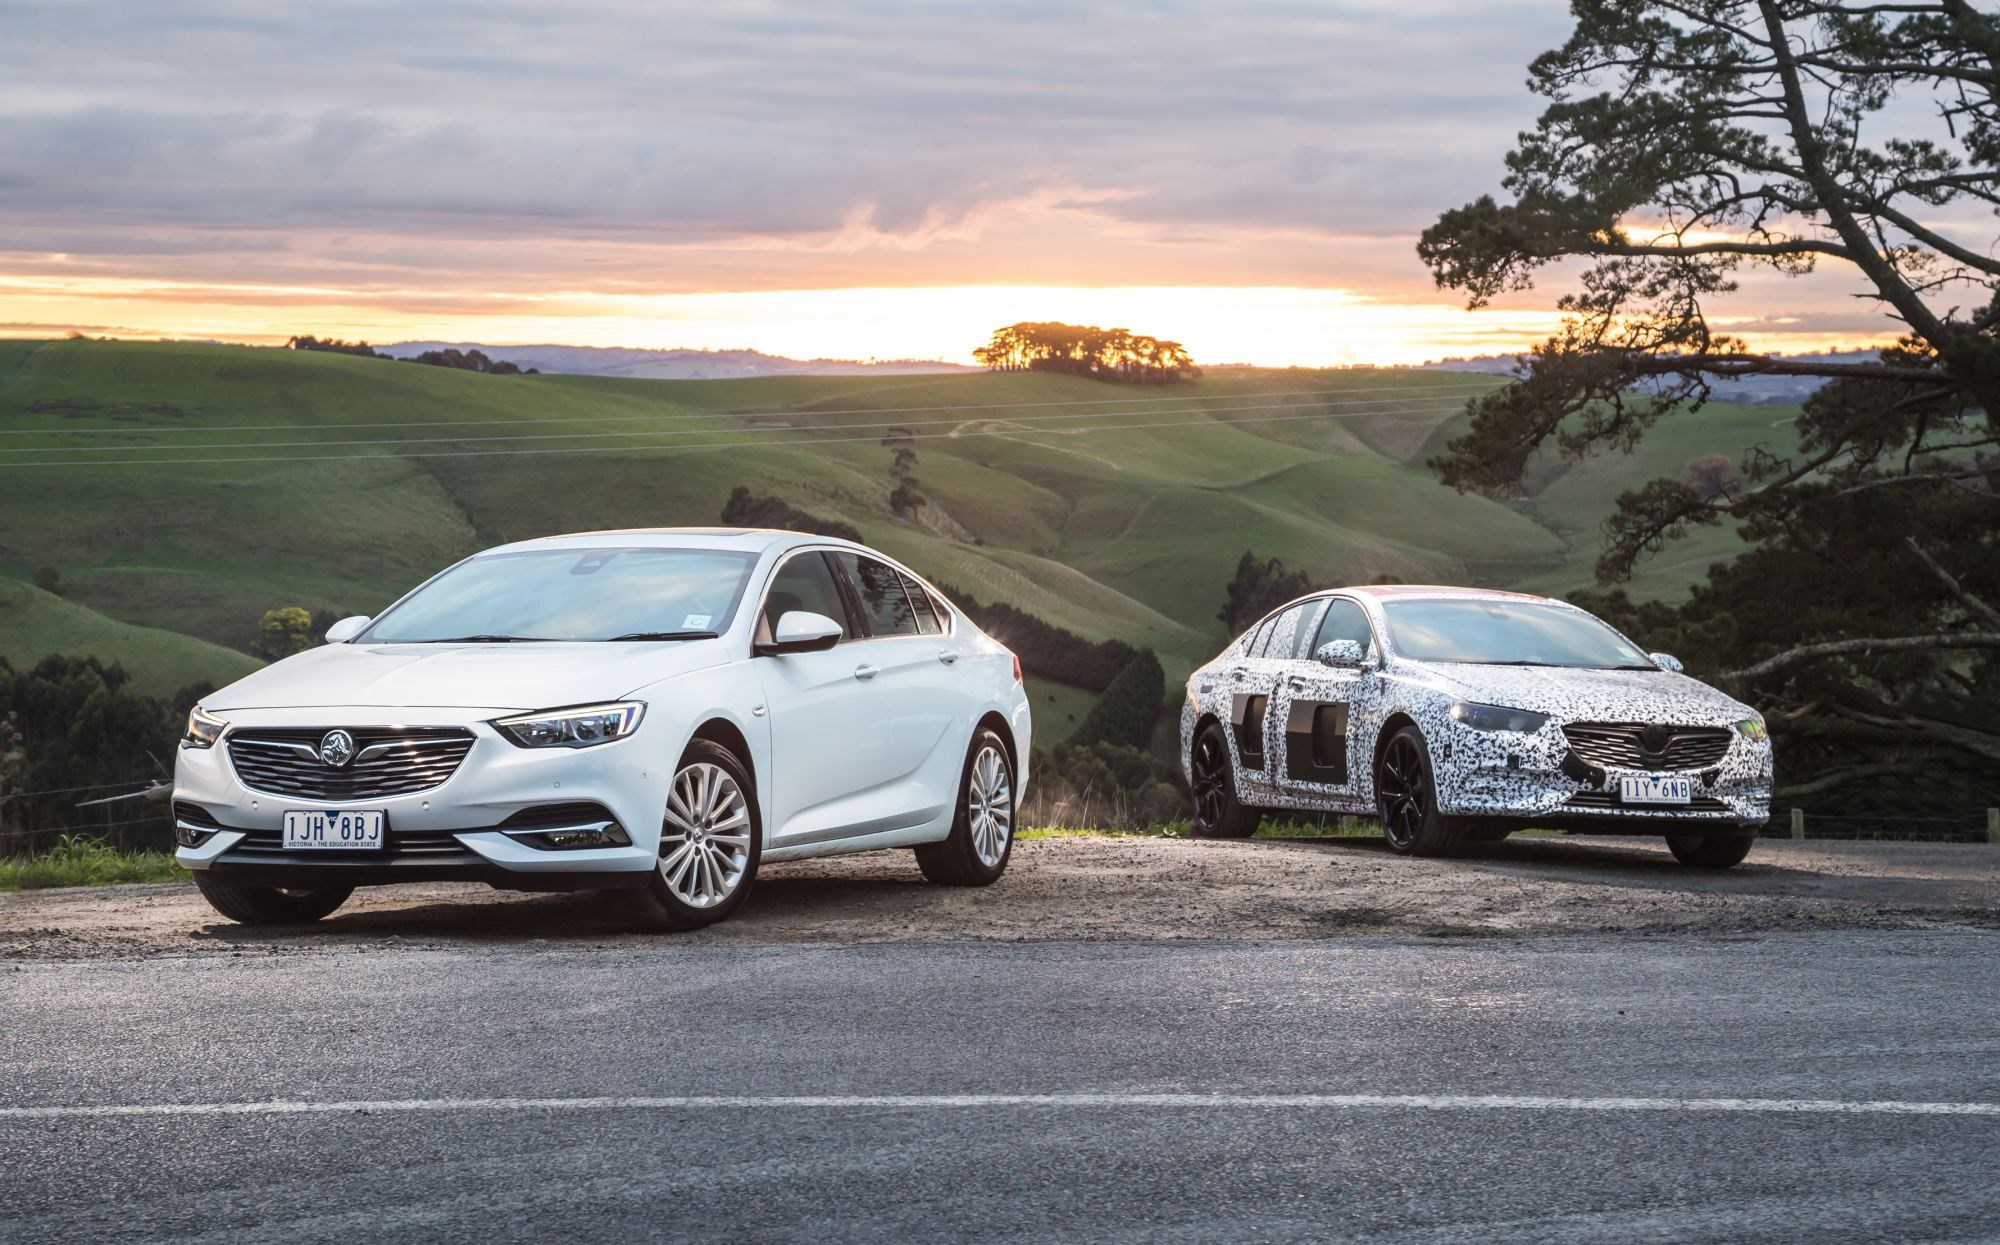 2018 ford xr8. Fine 2018 Holden Puts Finishing Touches On 2018 Commodore In Ford Xr8